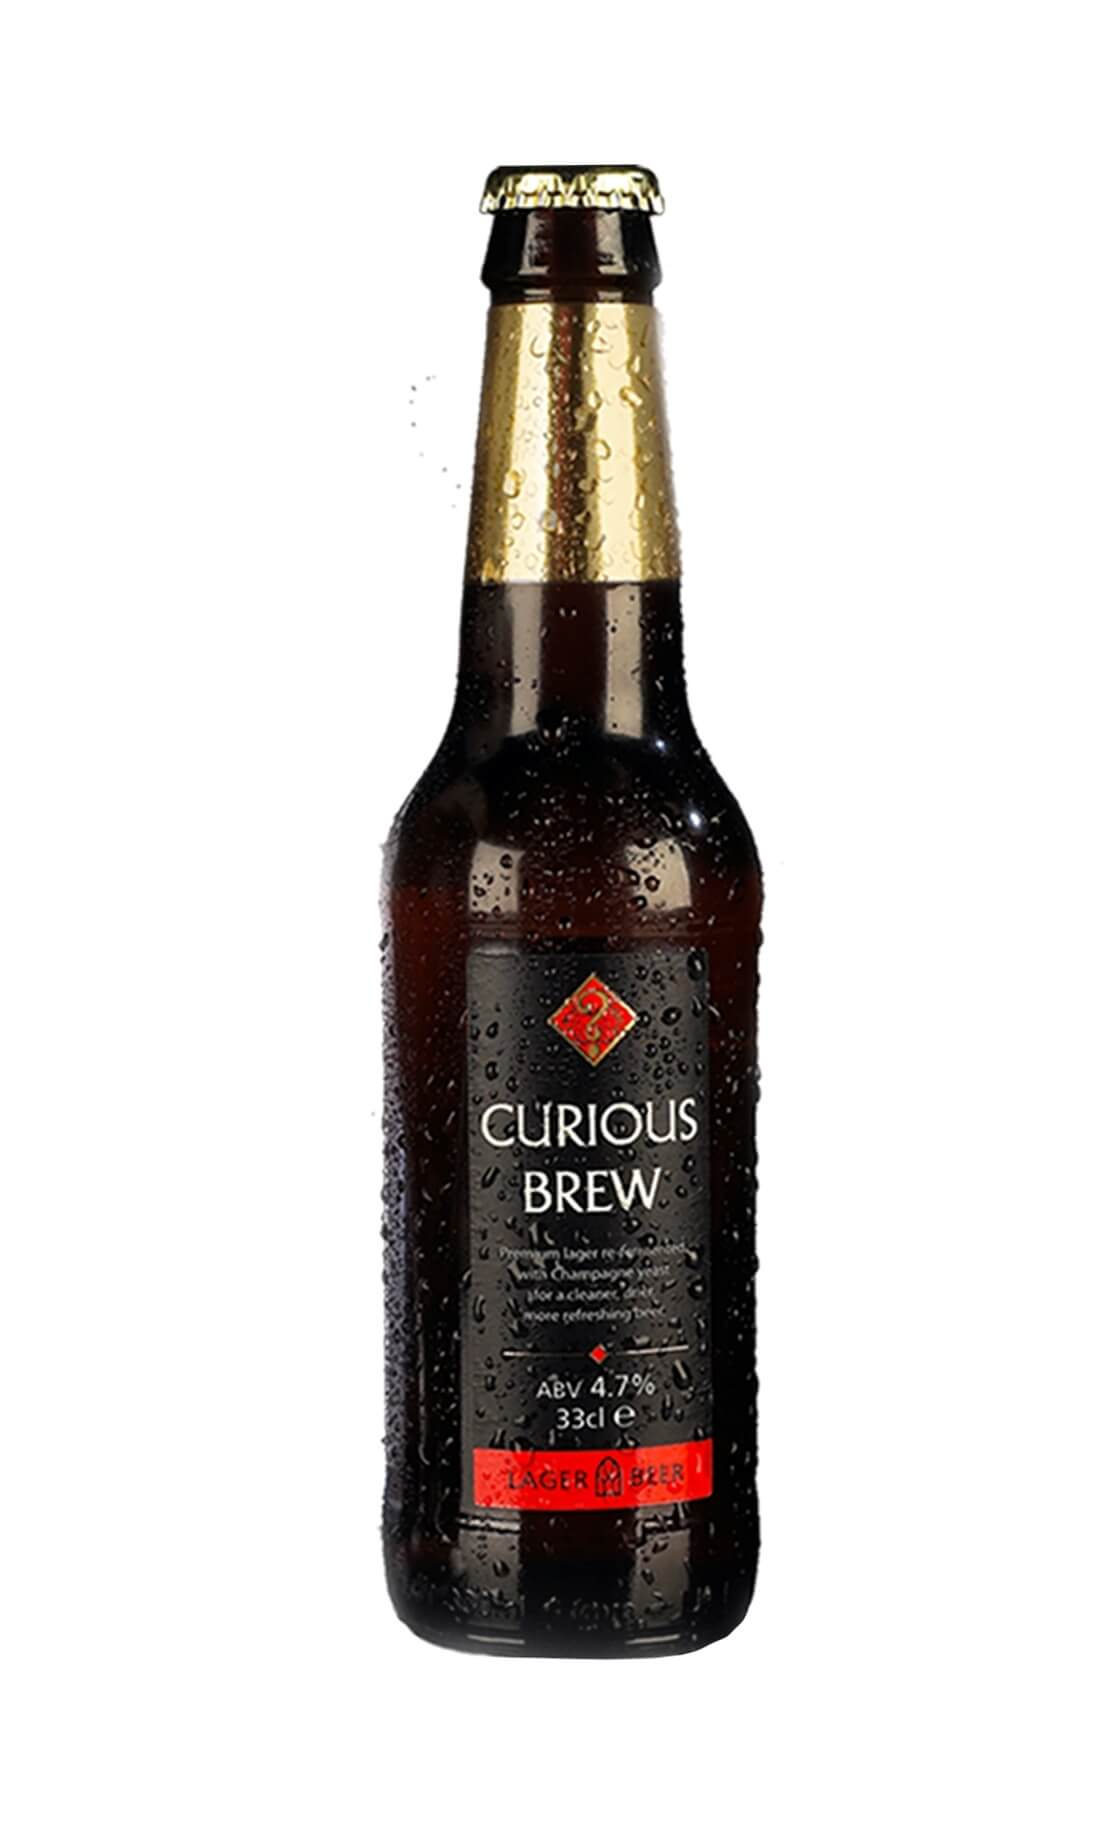 Curious Brew (plain bottle without reflection)